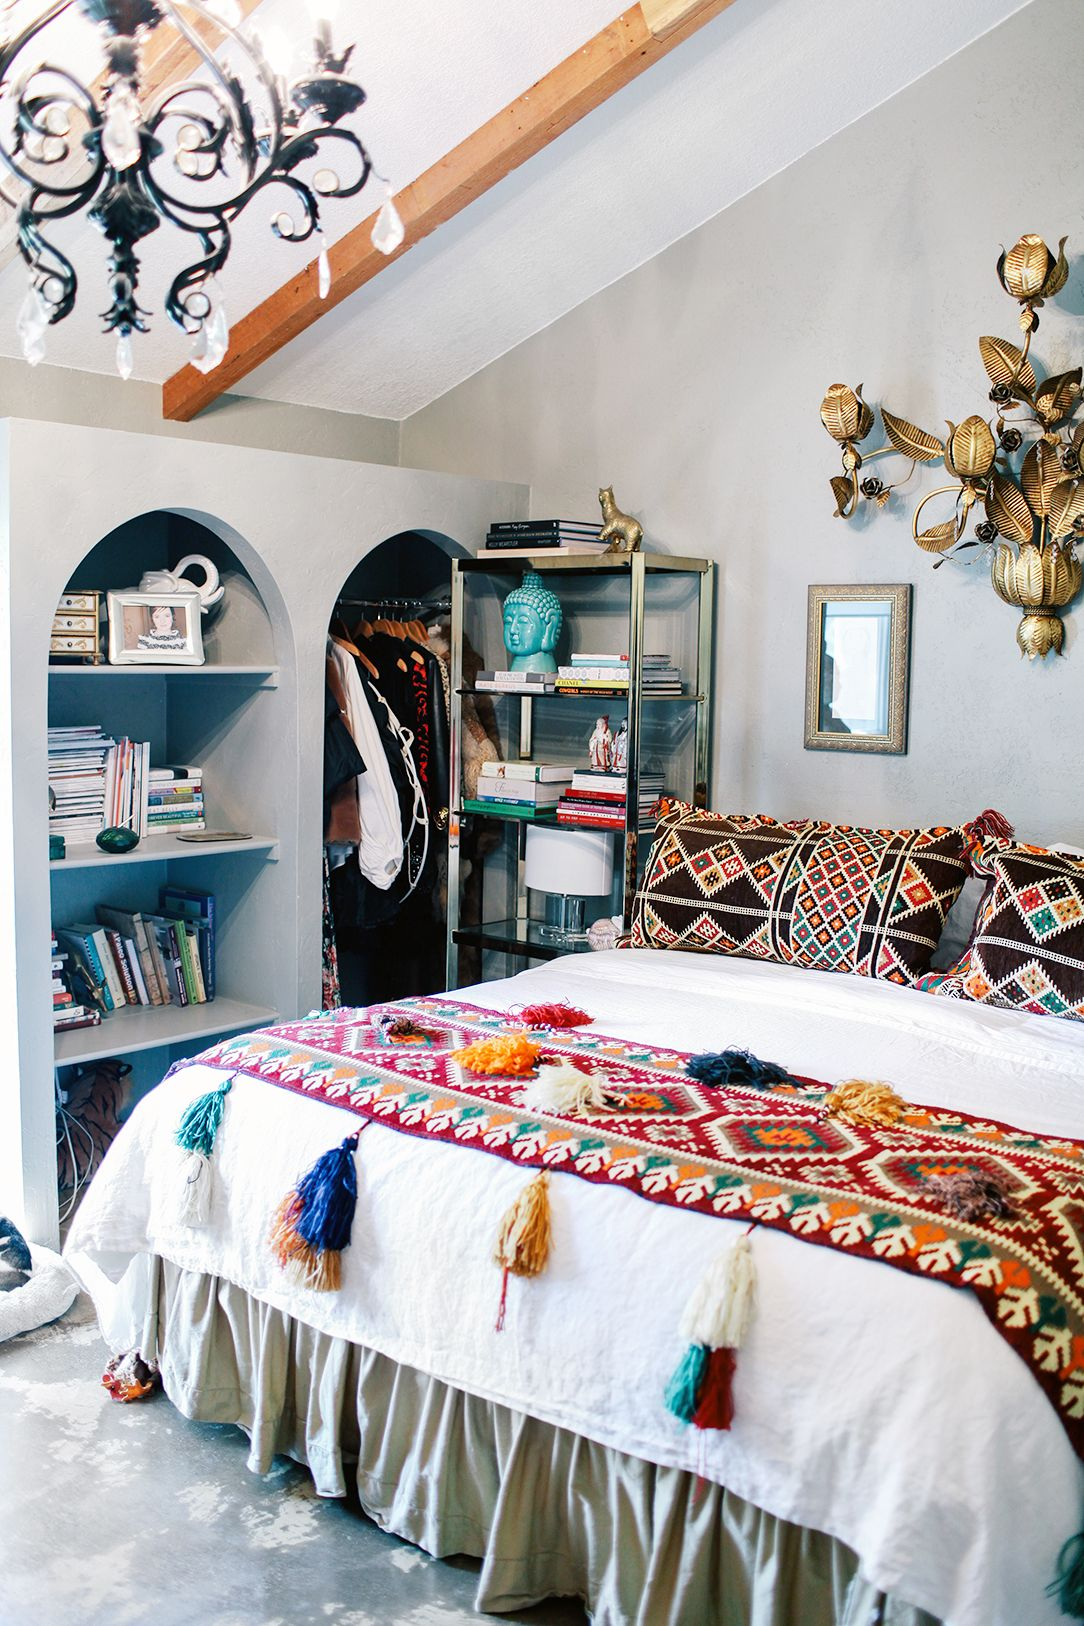 Wohndesign schlafzimmermöbel judy aldridge gives her home a boho thriftstore makeover